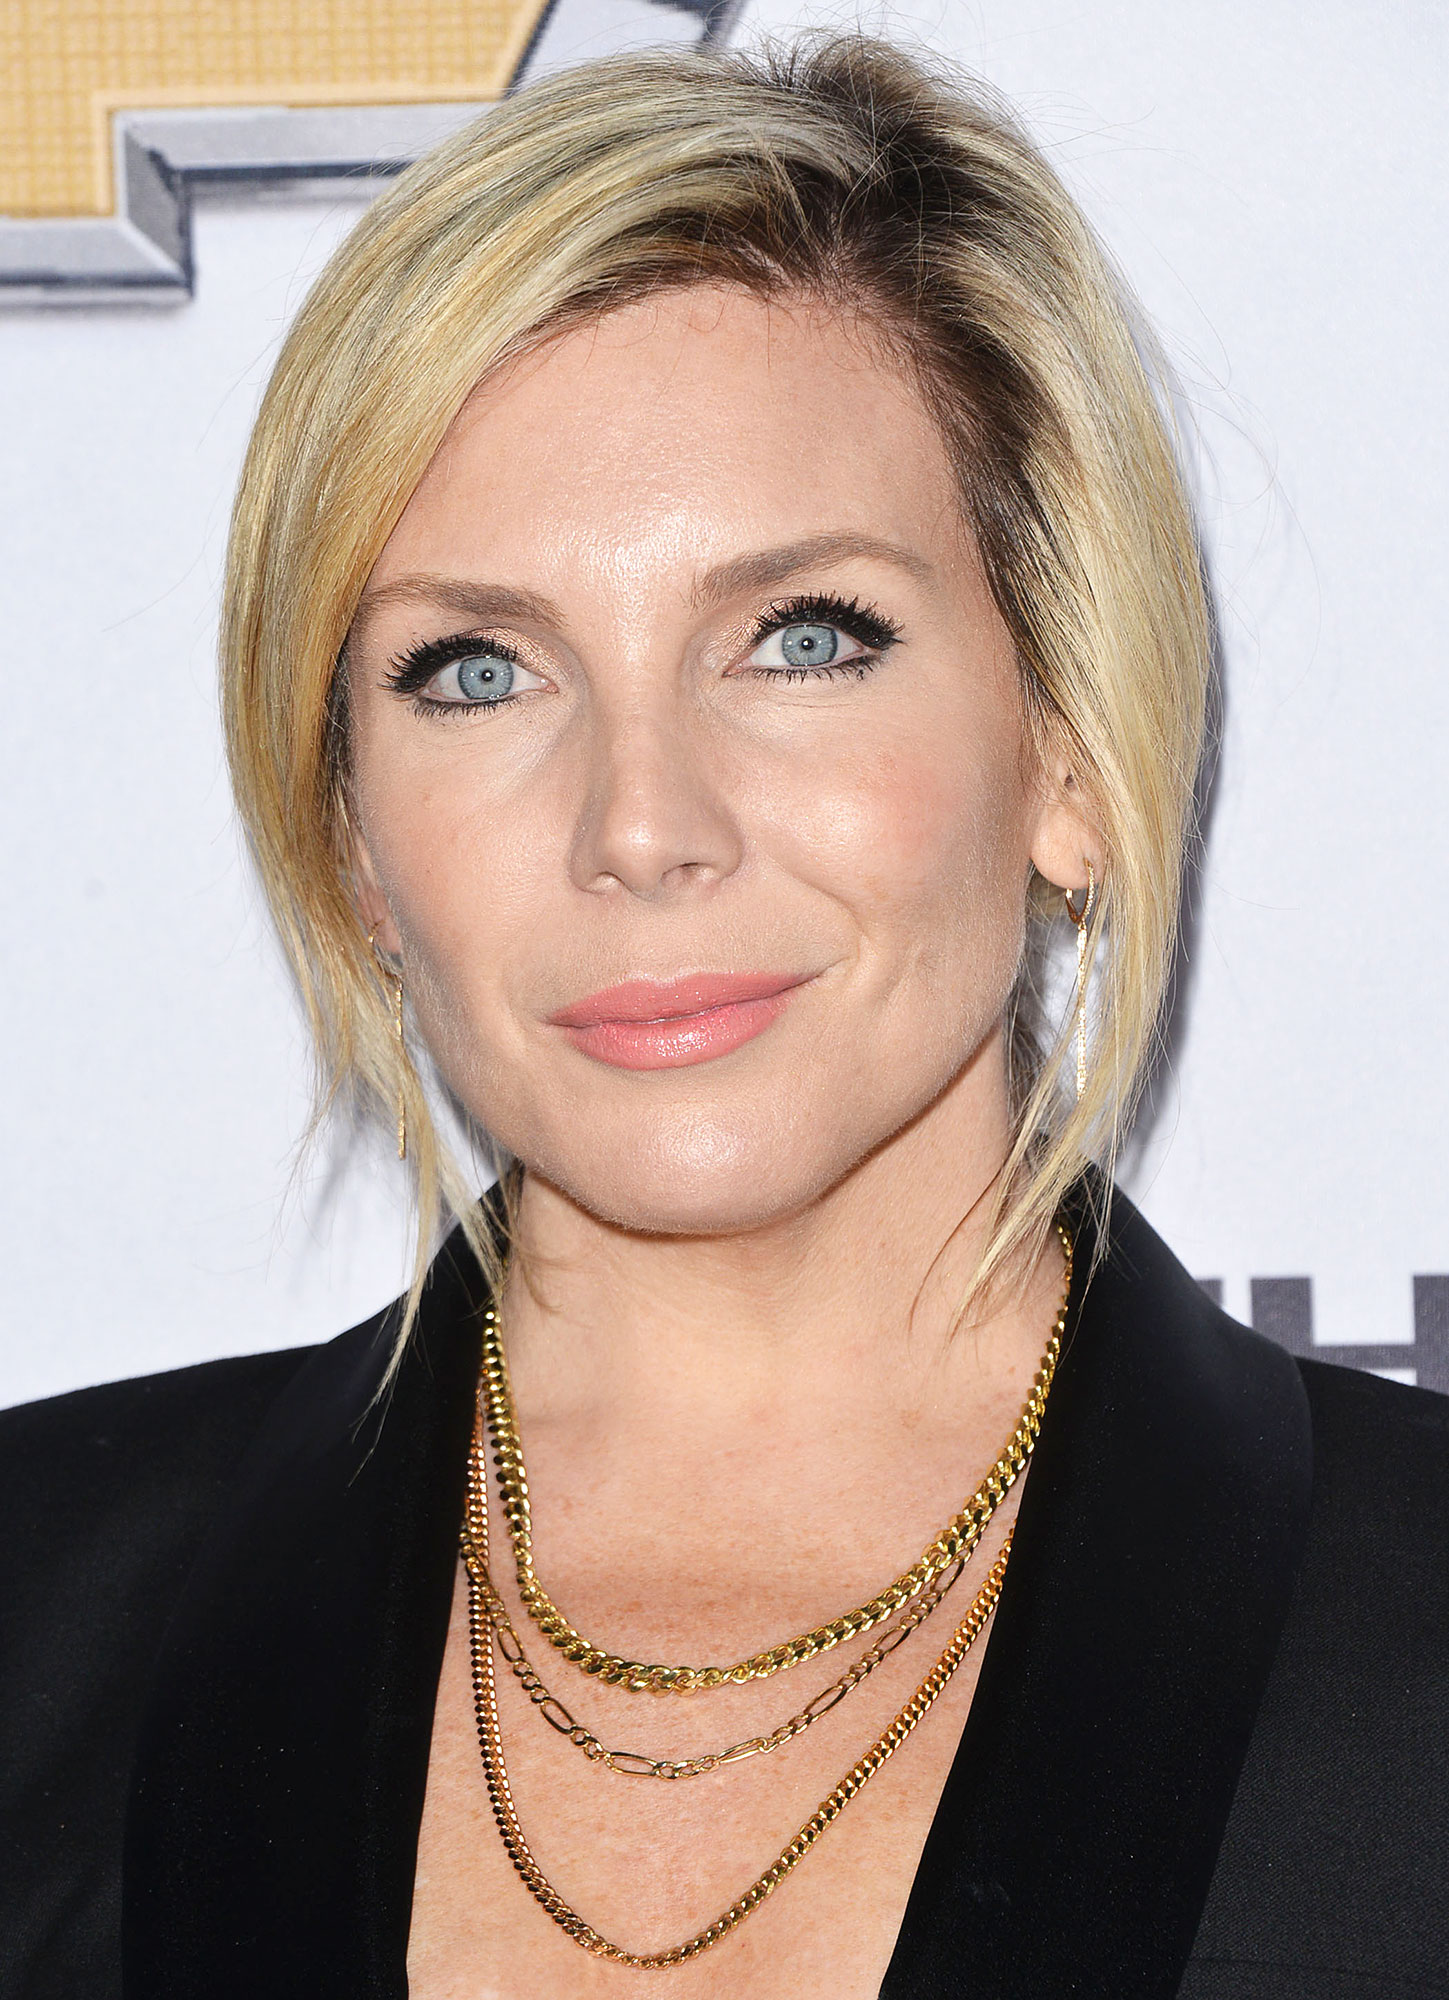 June Diane Raphael Is 'Super Open' With Her and Paul Scheer's Sons, Talks to Them About Gender Fluidity